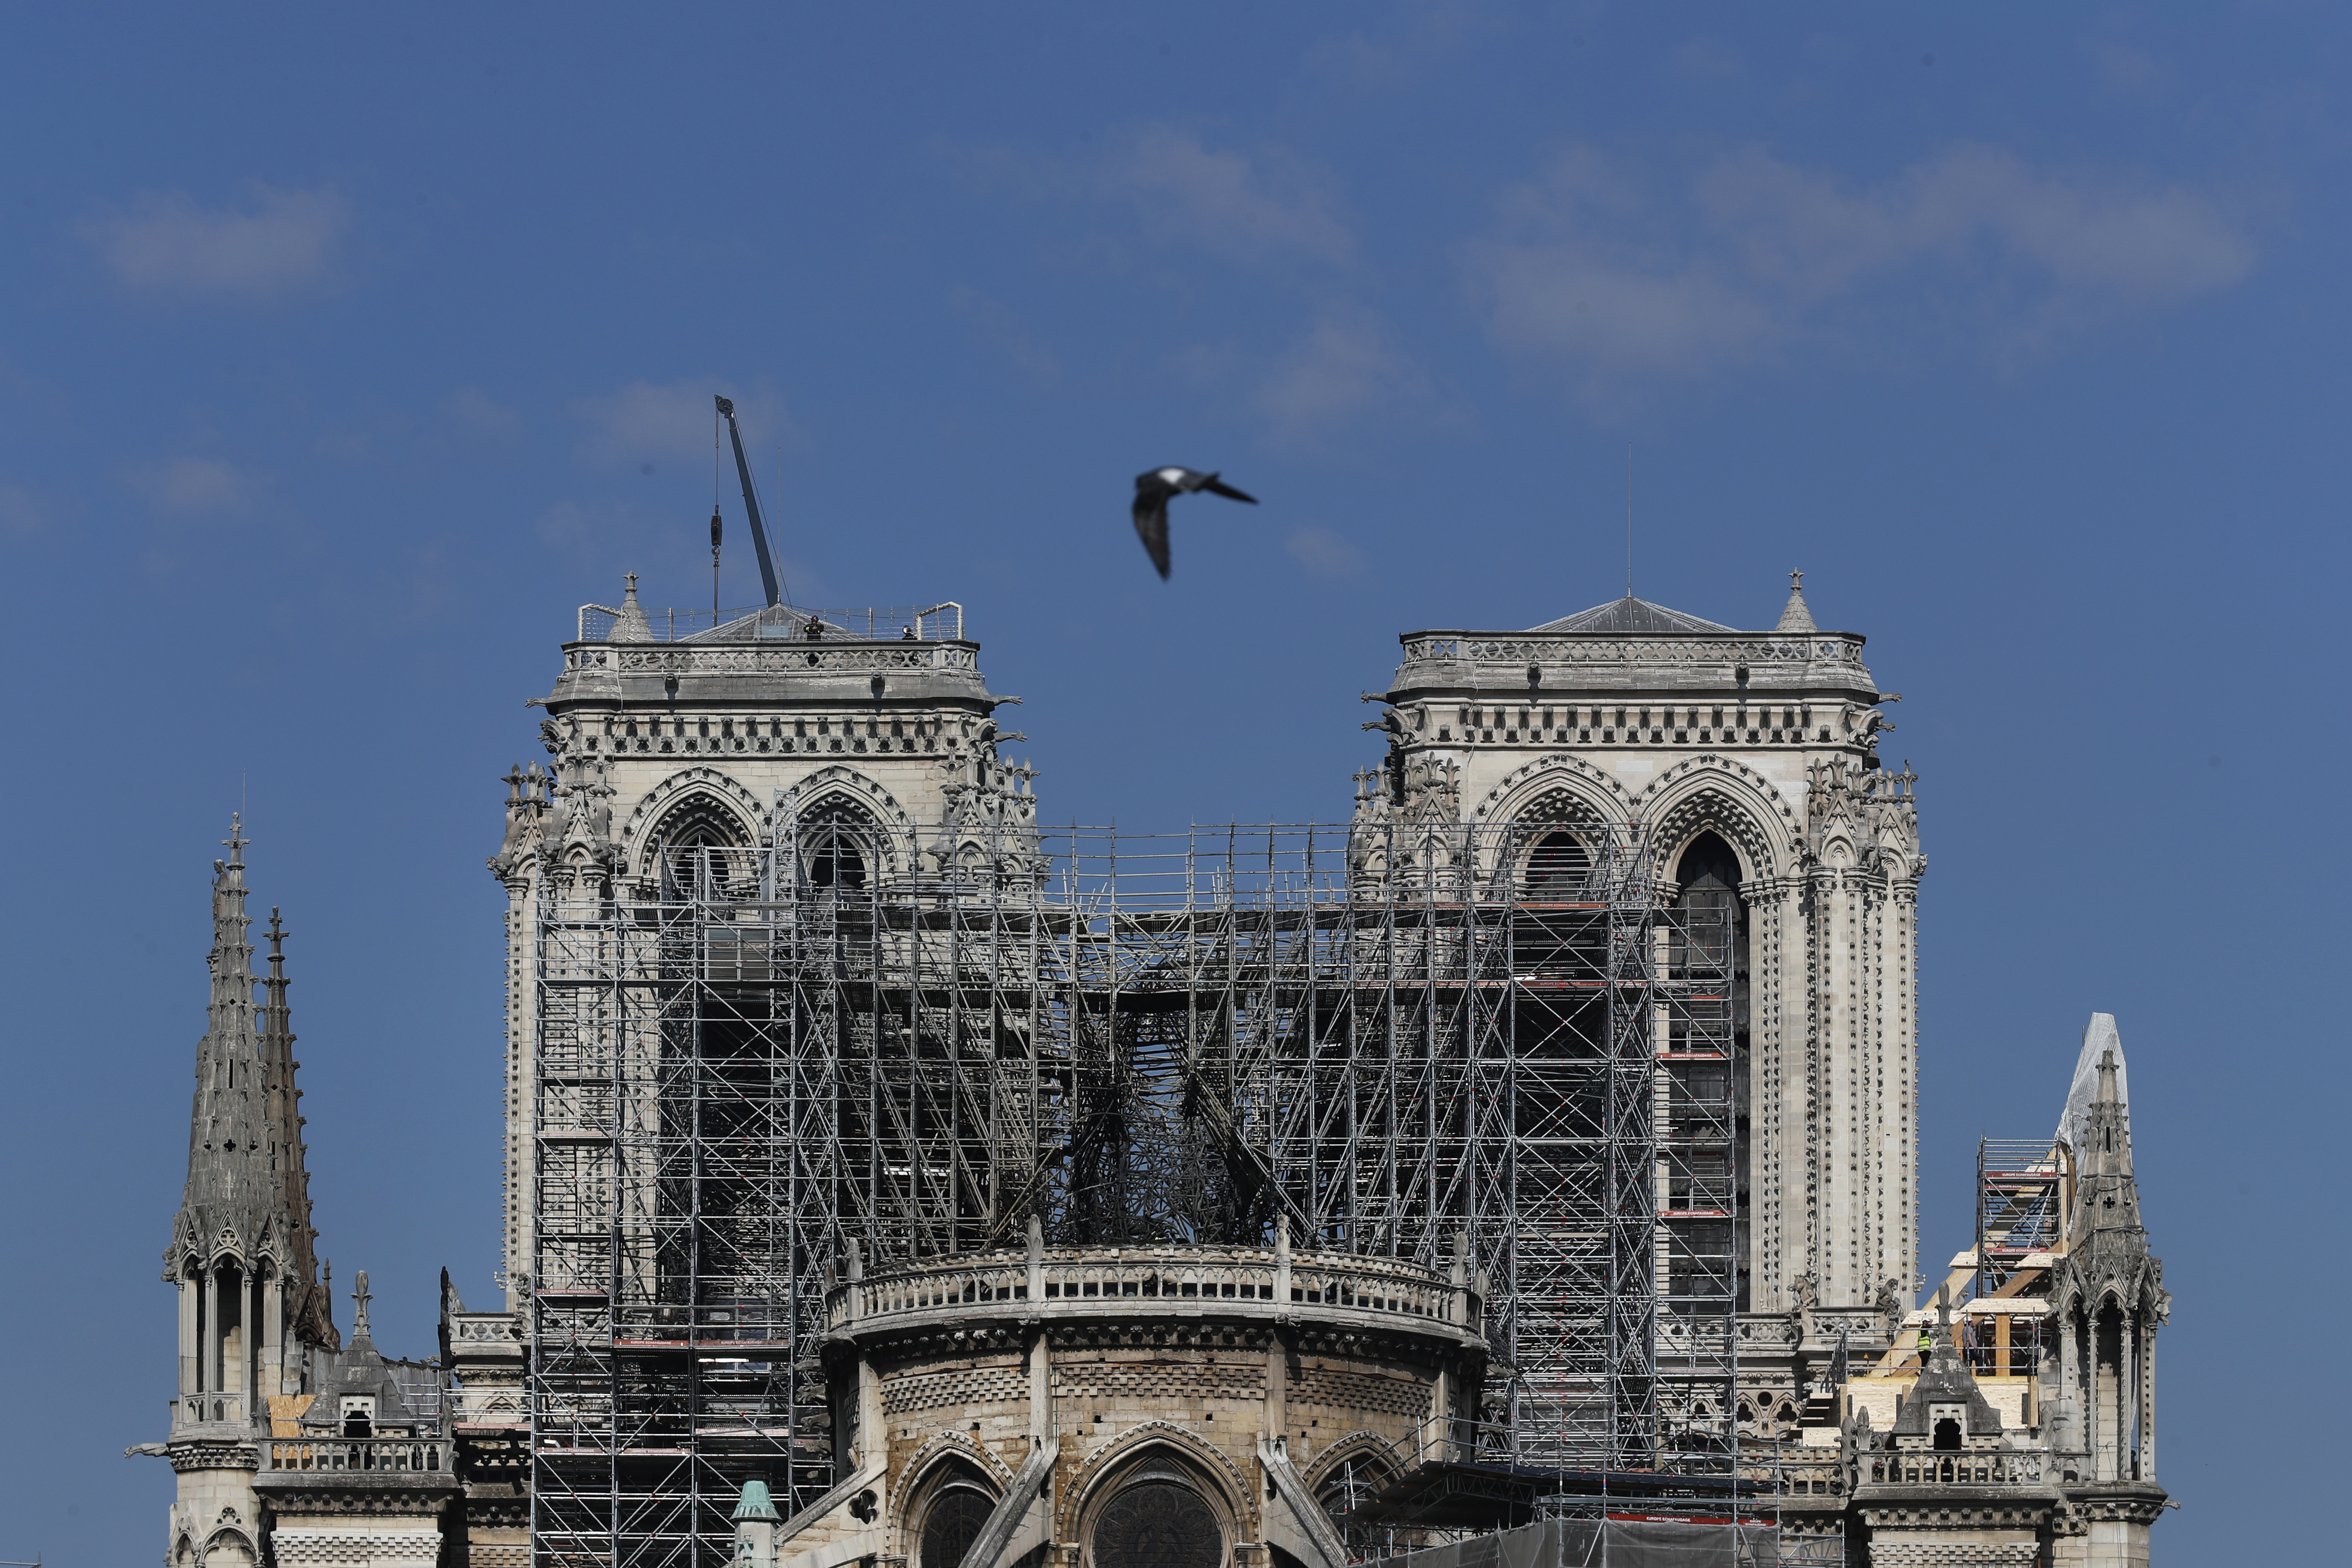 With Notre Dame cathedral stabilized and firefighters gone, debate begins over how to rebuild